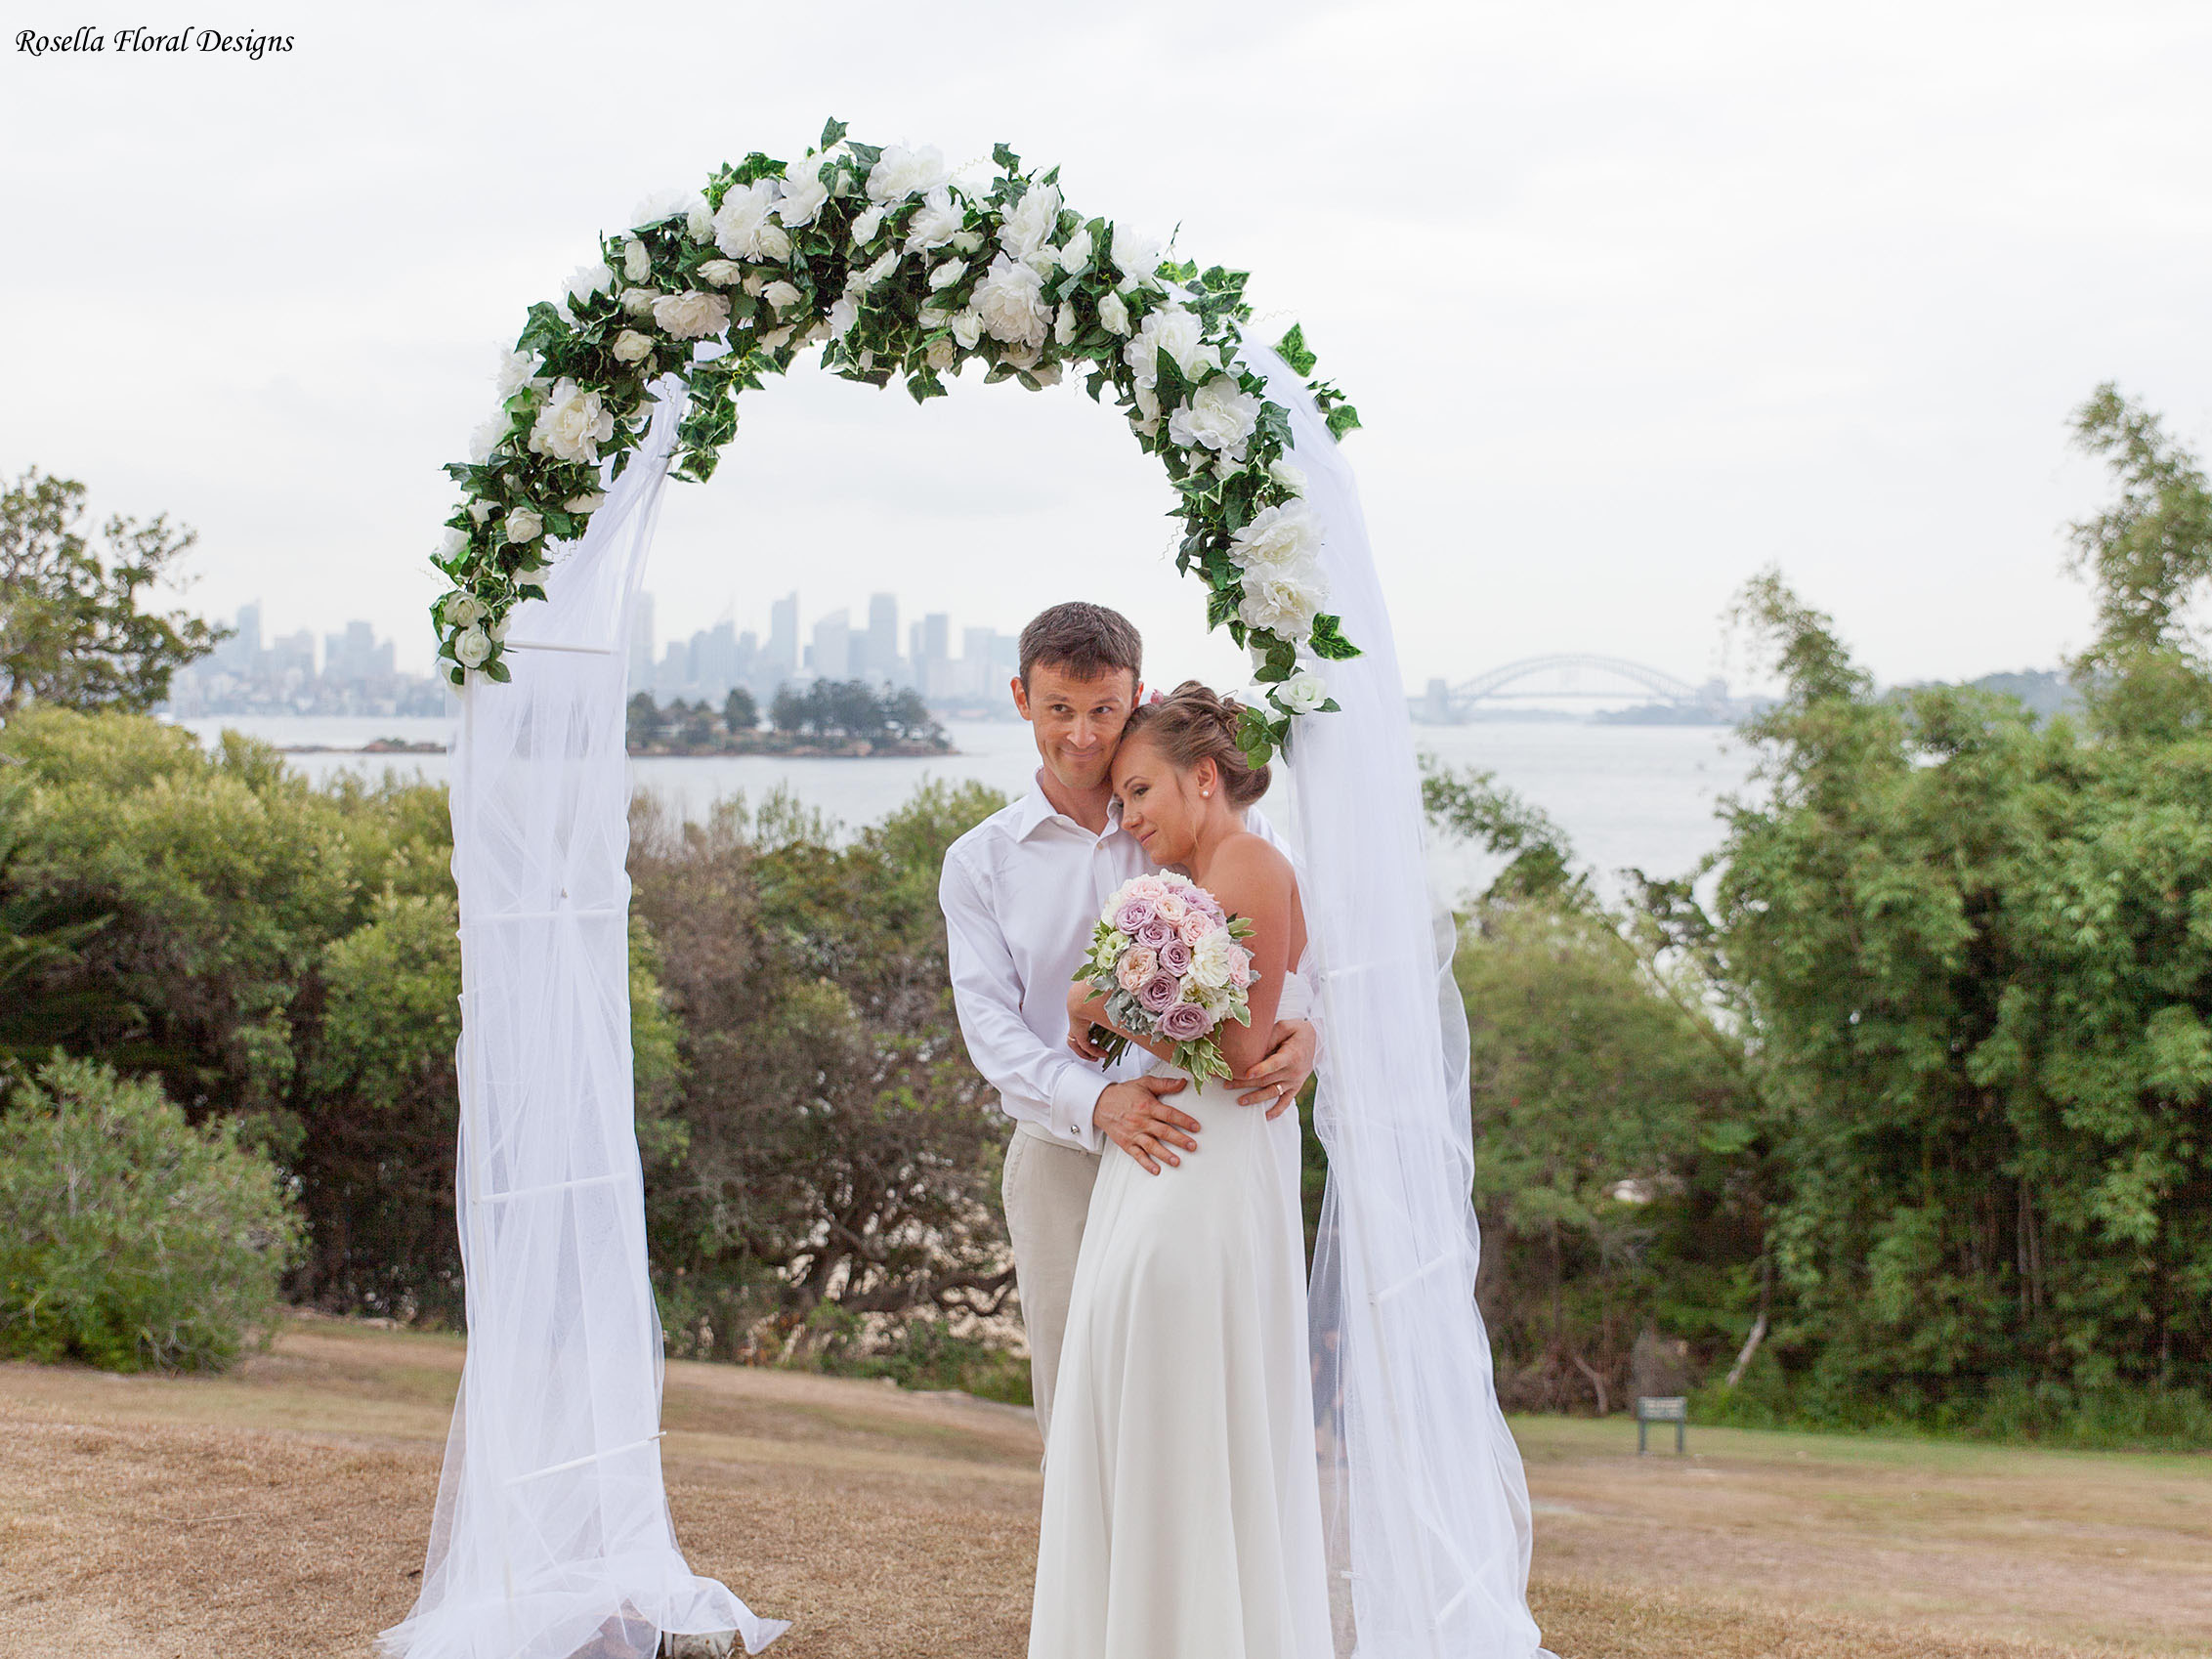 Floral arch for hire $150. Includes set up, silk flowers, tulle or white chiffon fabric  Dimensions: Arch Height: 2.25m ; Length: 1.2m; Depth: o.4m